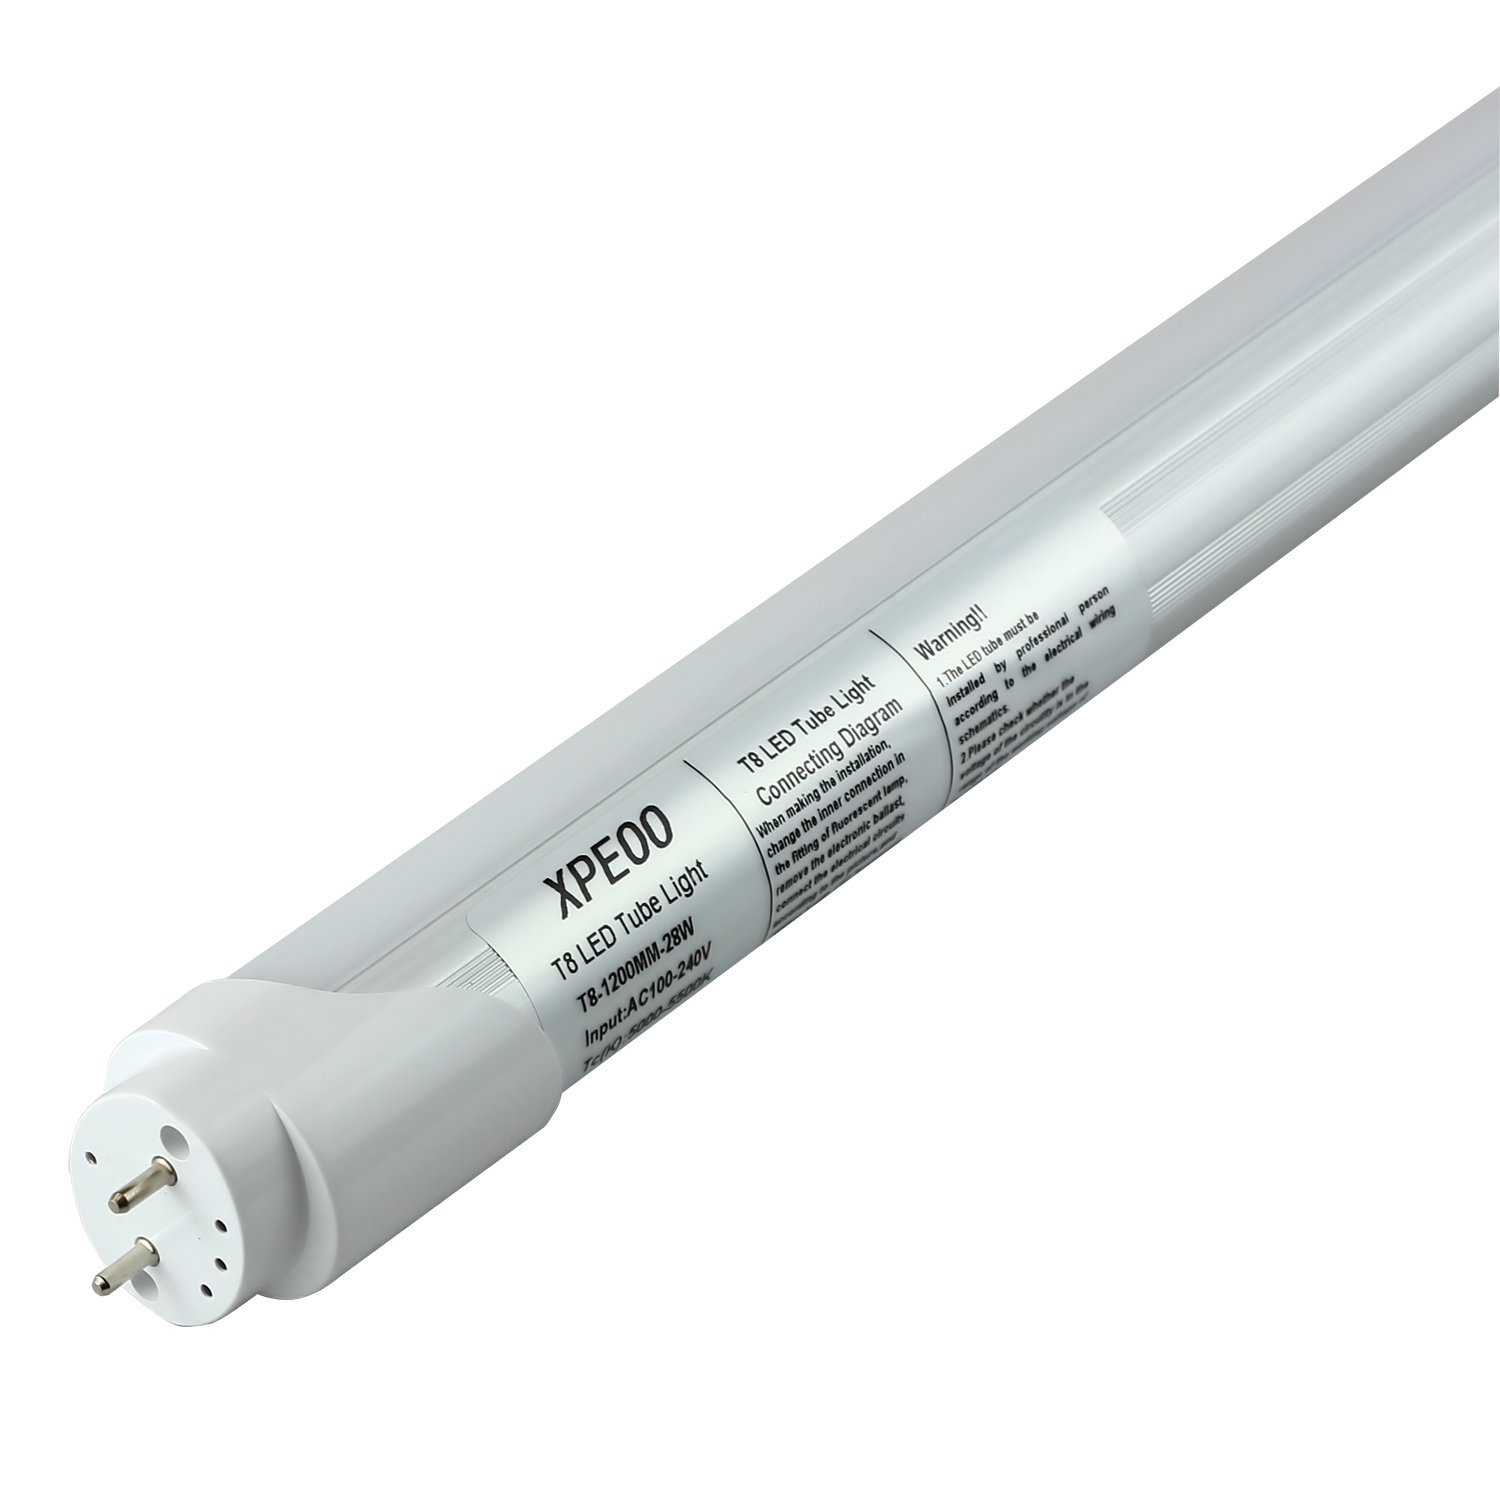 medium resolution of xpeoo t8 1200mm 28w 4ft energy saving daylight white led tube lamps check back soon blinq